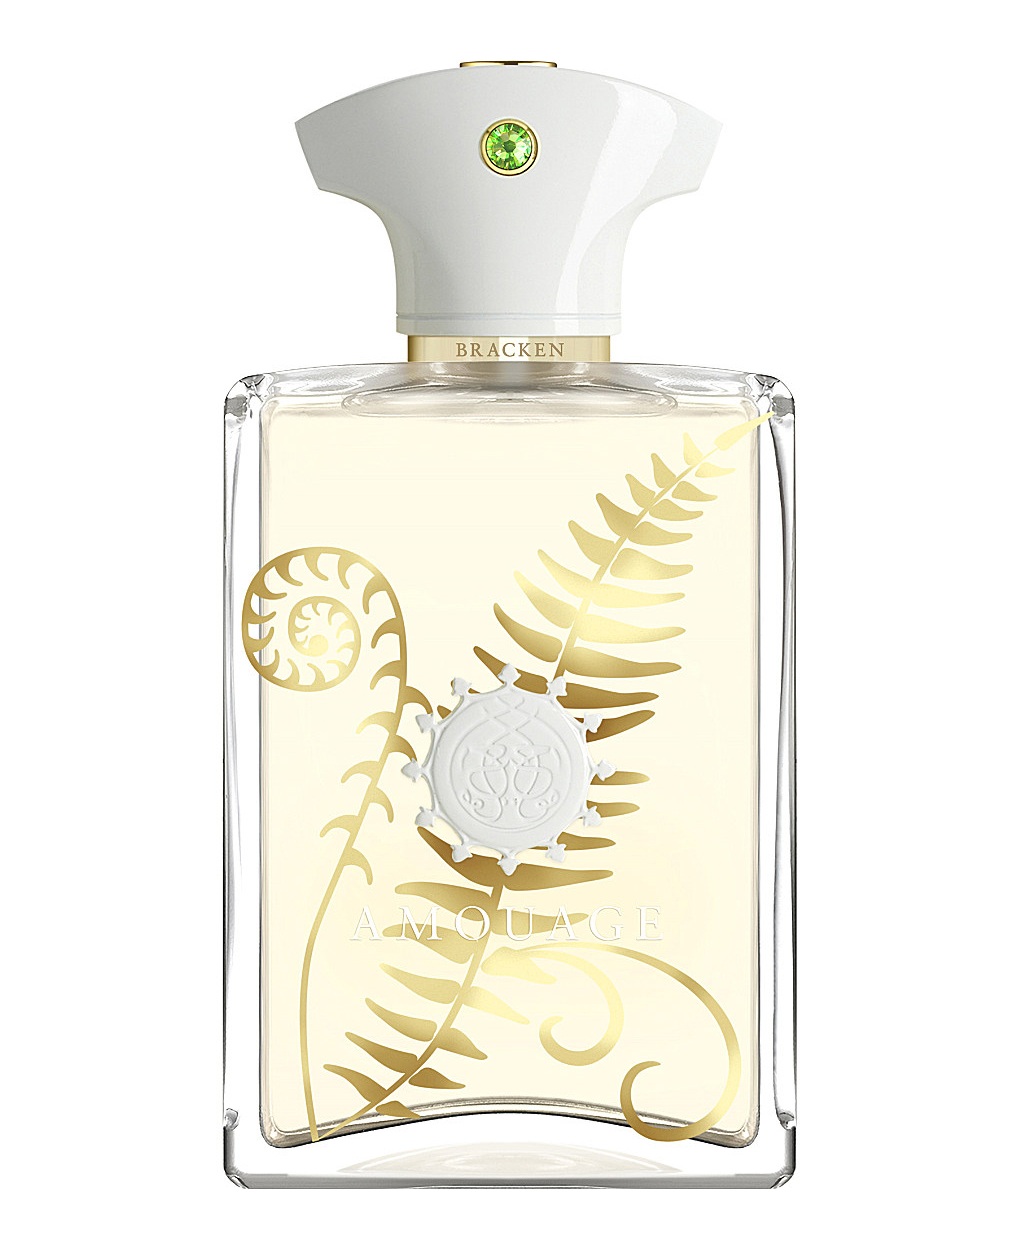 http://unifive.ru/uploads/image/file/16794/Amouage_Bracken_for_Men.jpg